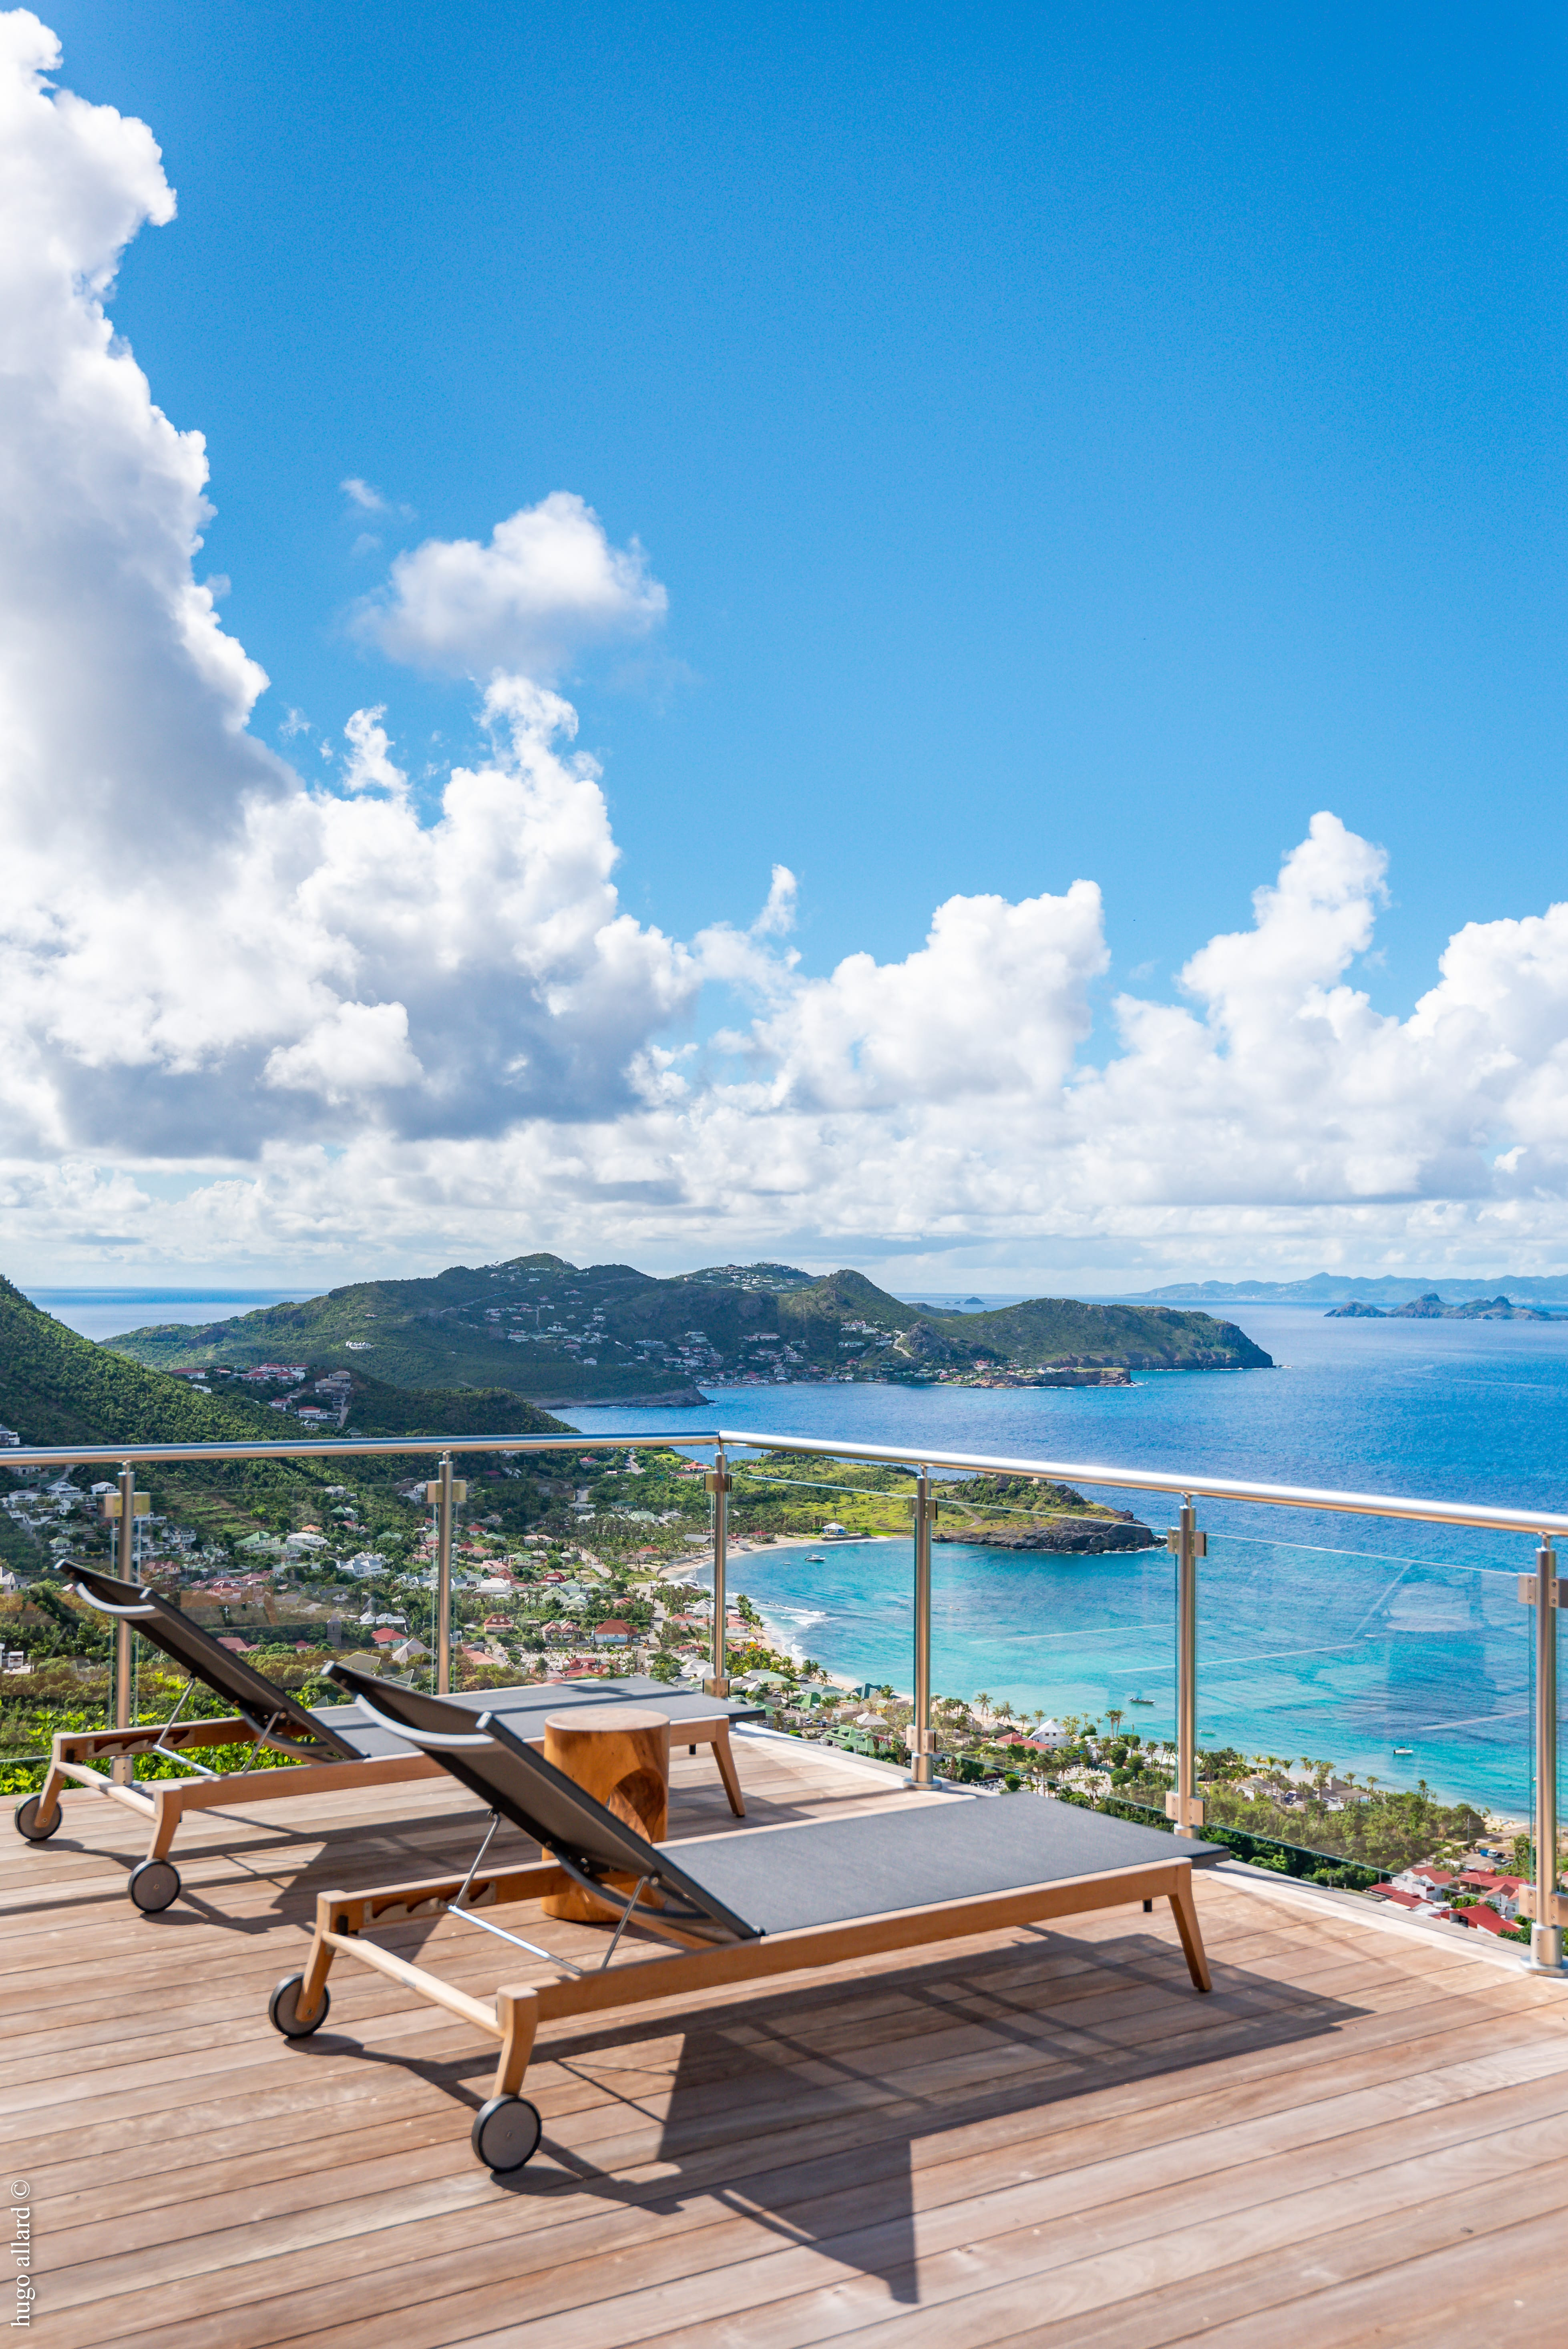 Real Estate in St Barts F.W.I